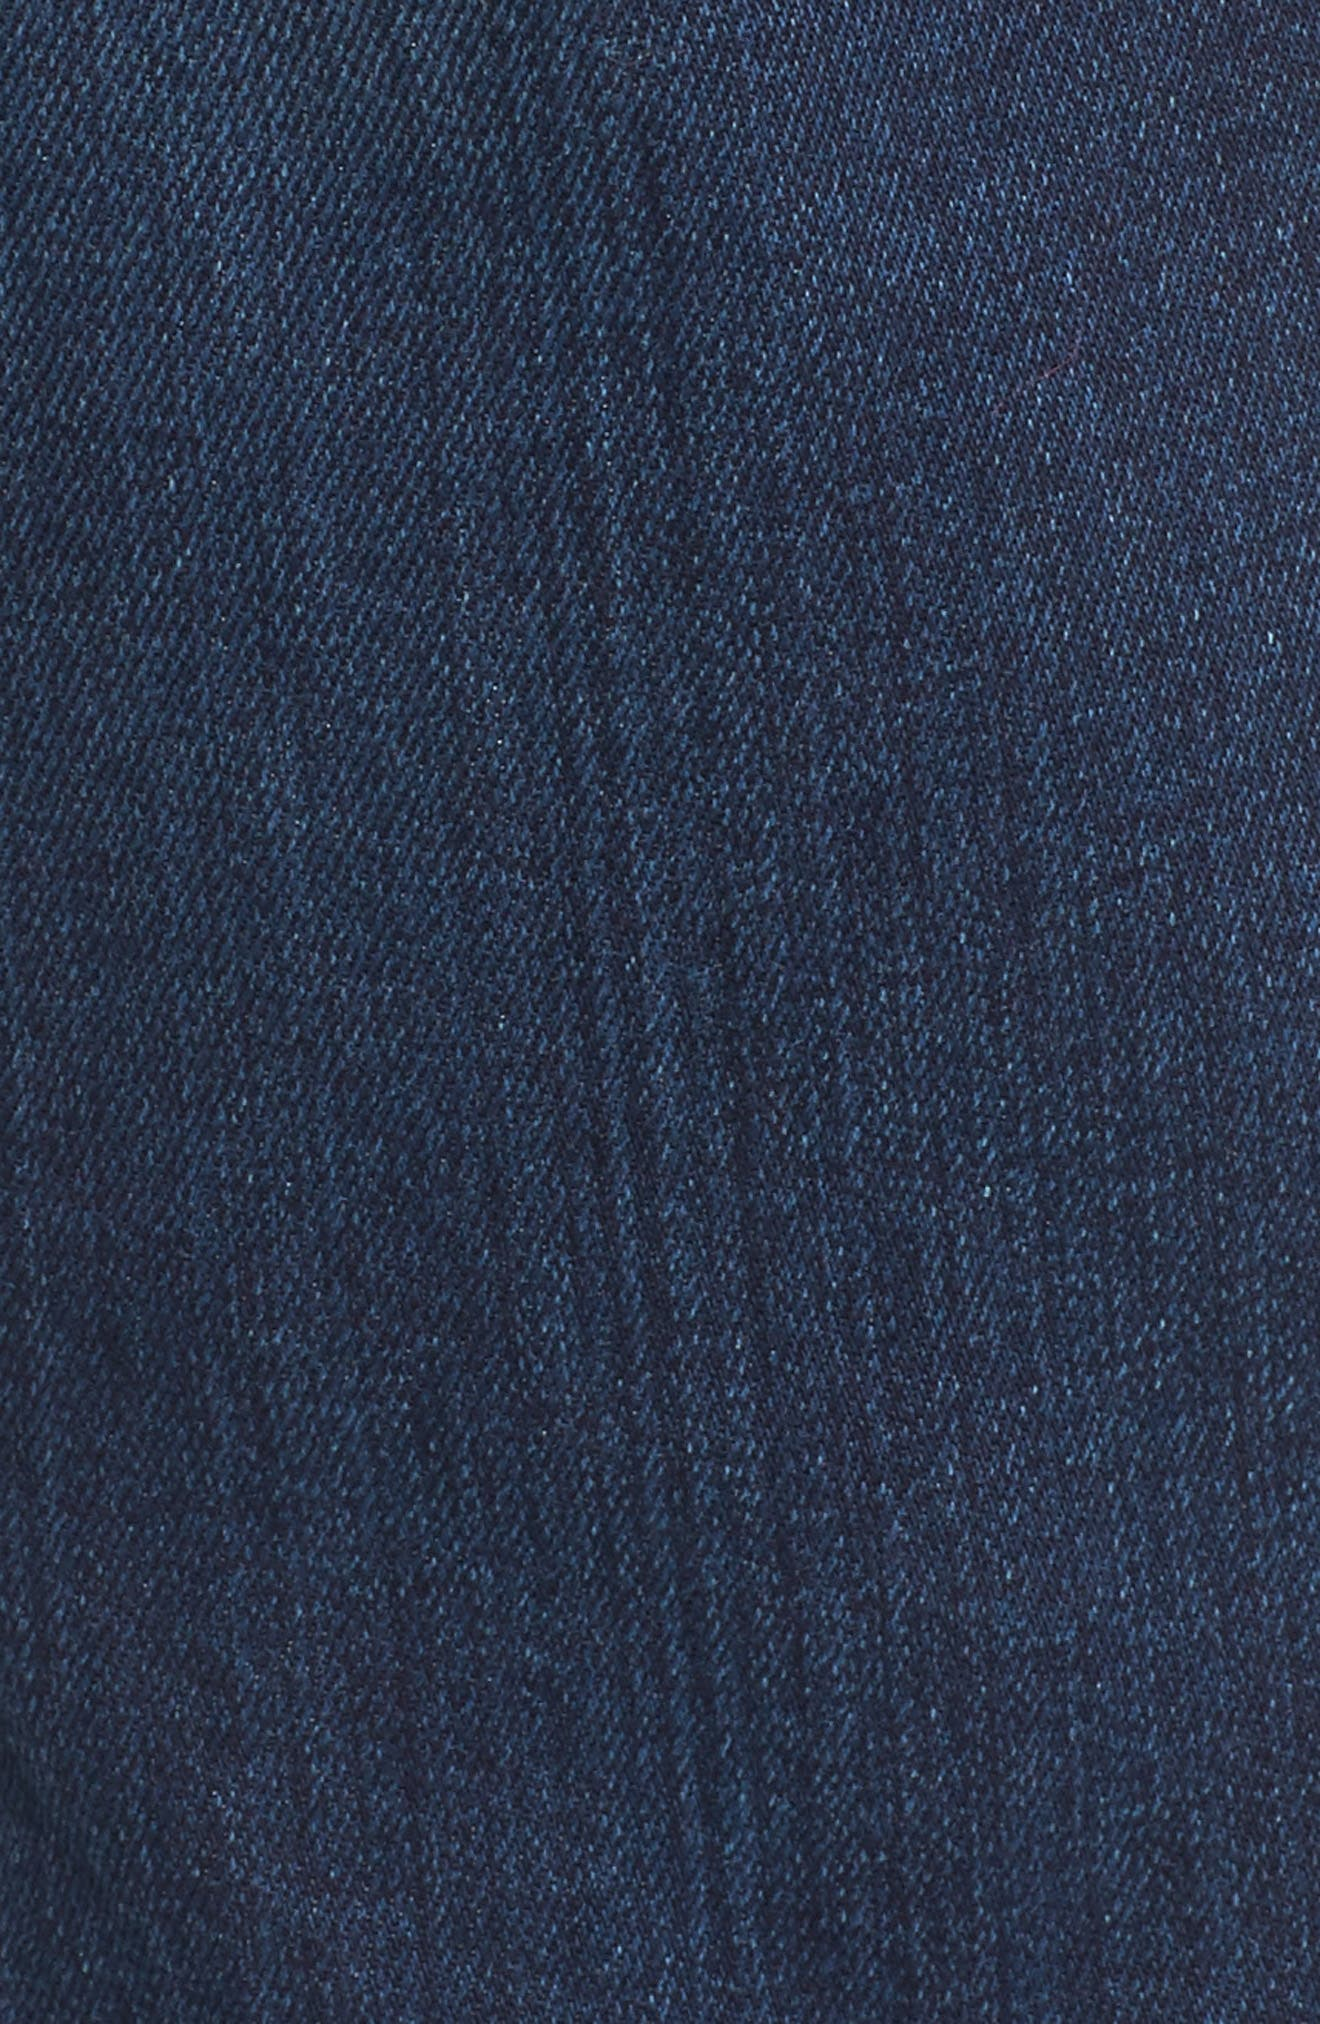 DIESEL<SUP>®</SUP>, Zatiny Bootcut Jeans, Alternate thumbnail 6, color, 084BU